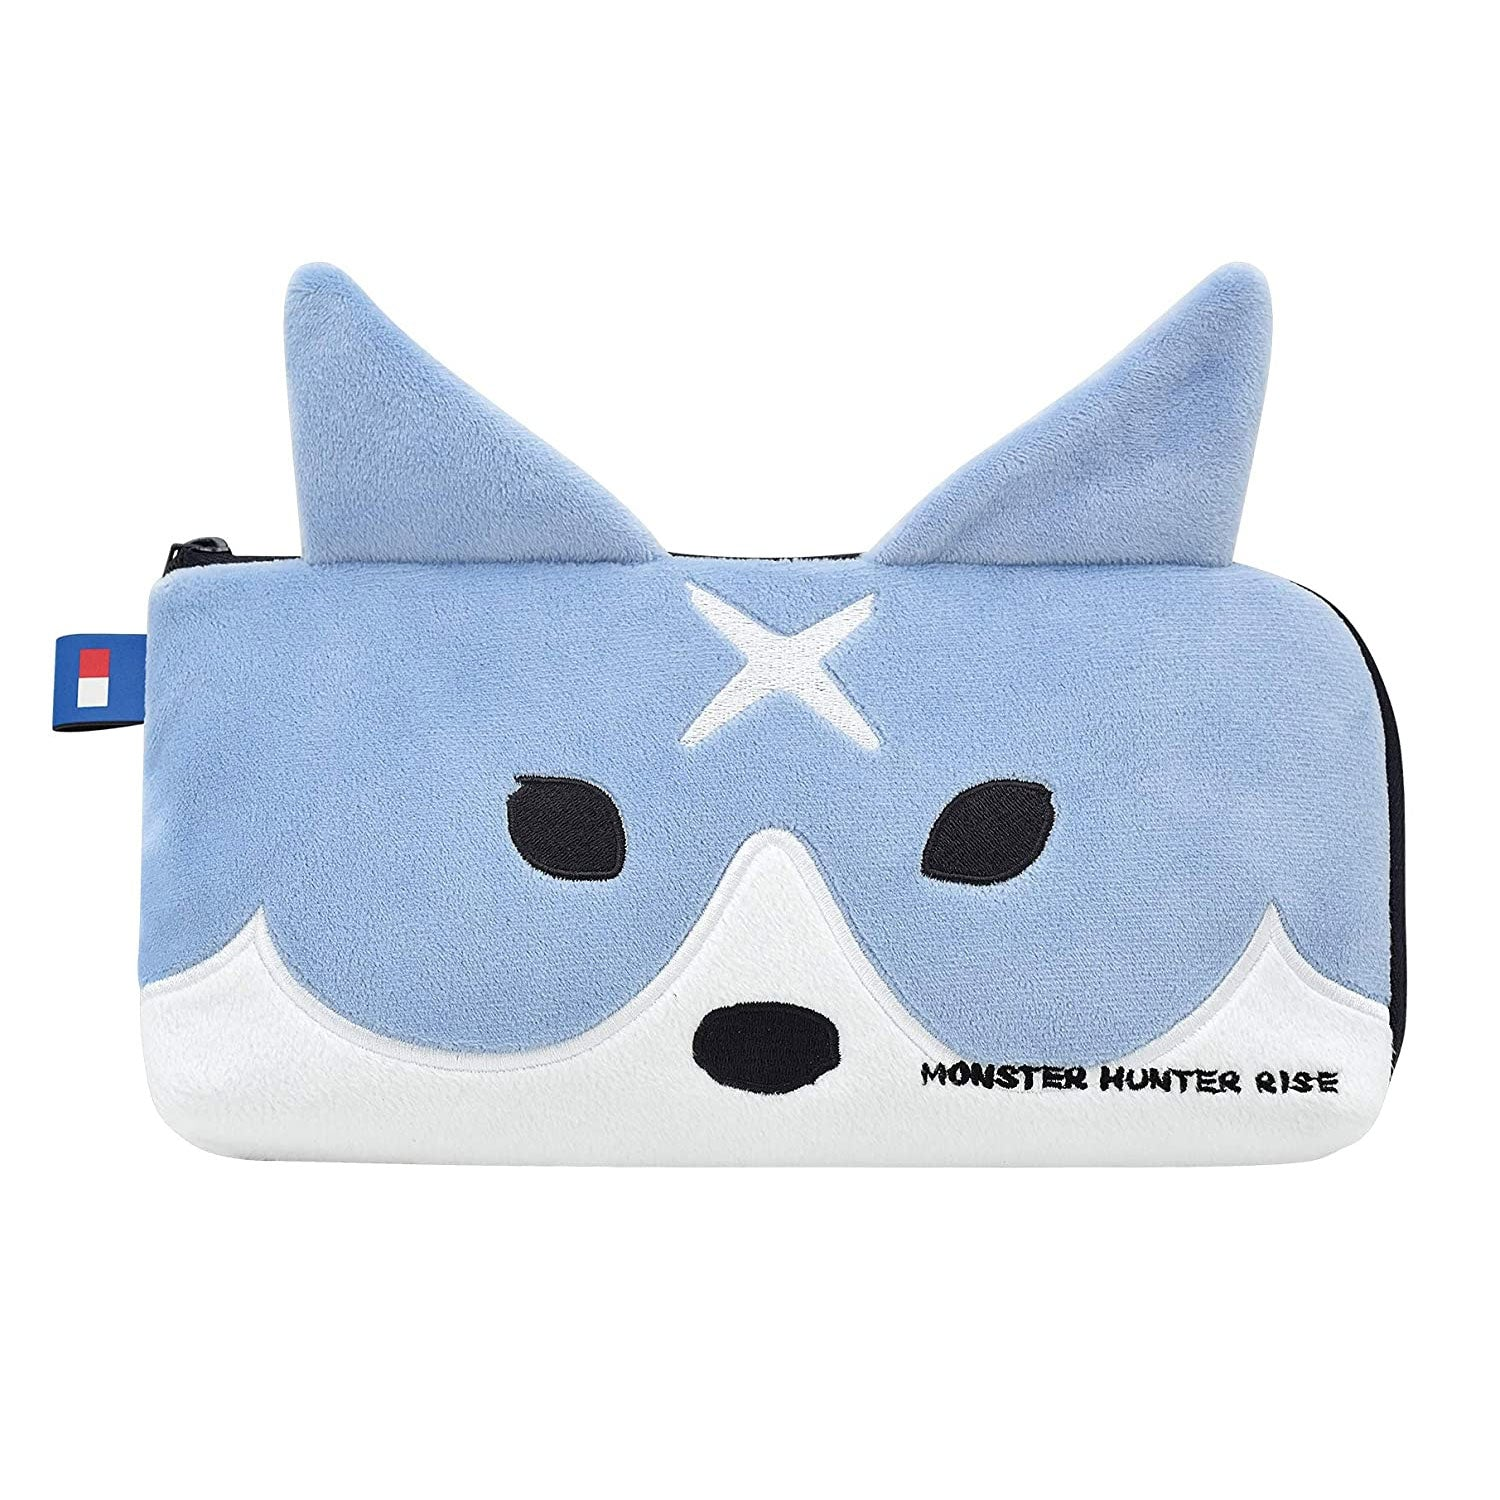 Hori Monster Hunter Rise Hand Pouch for Nintendo Switch / Lite (Palamute)